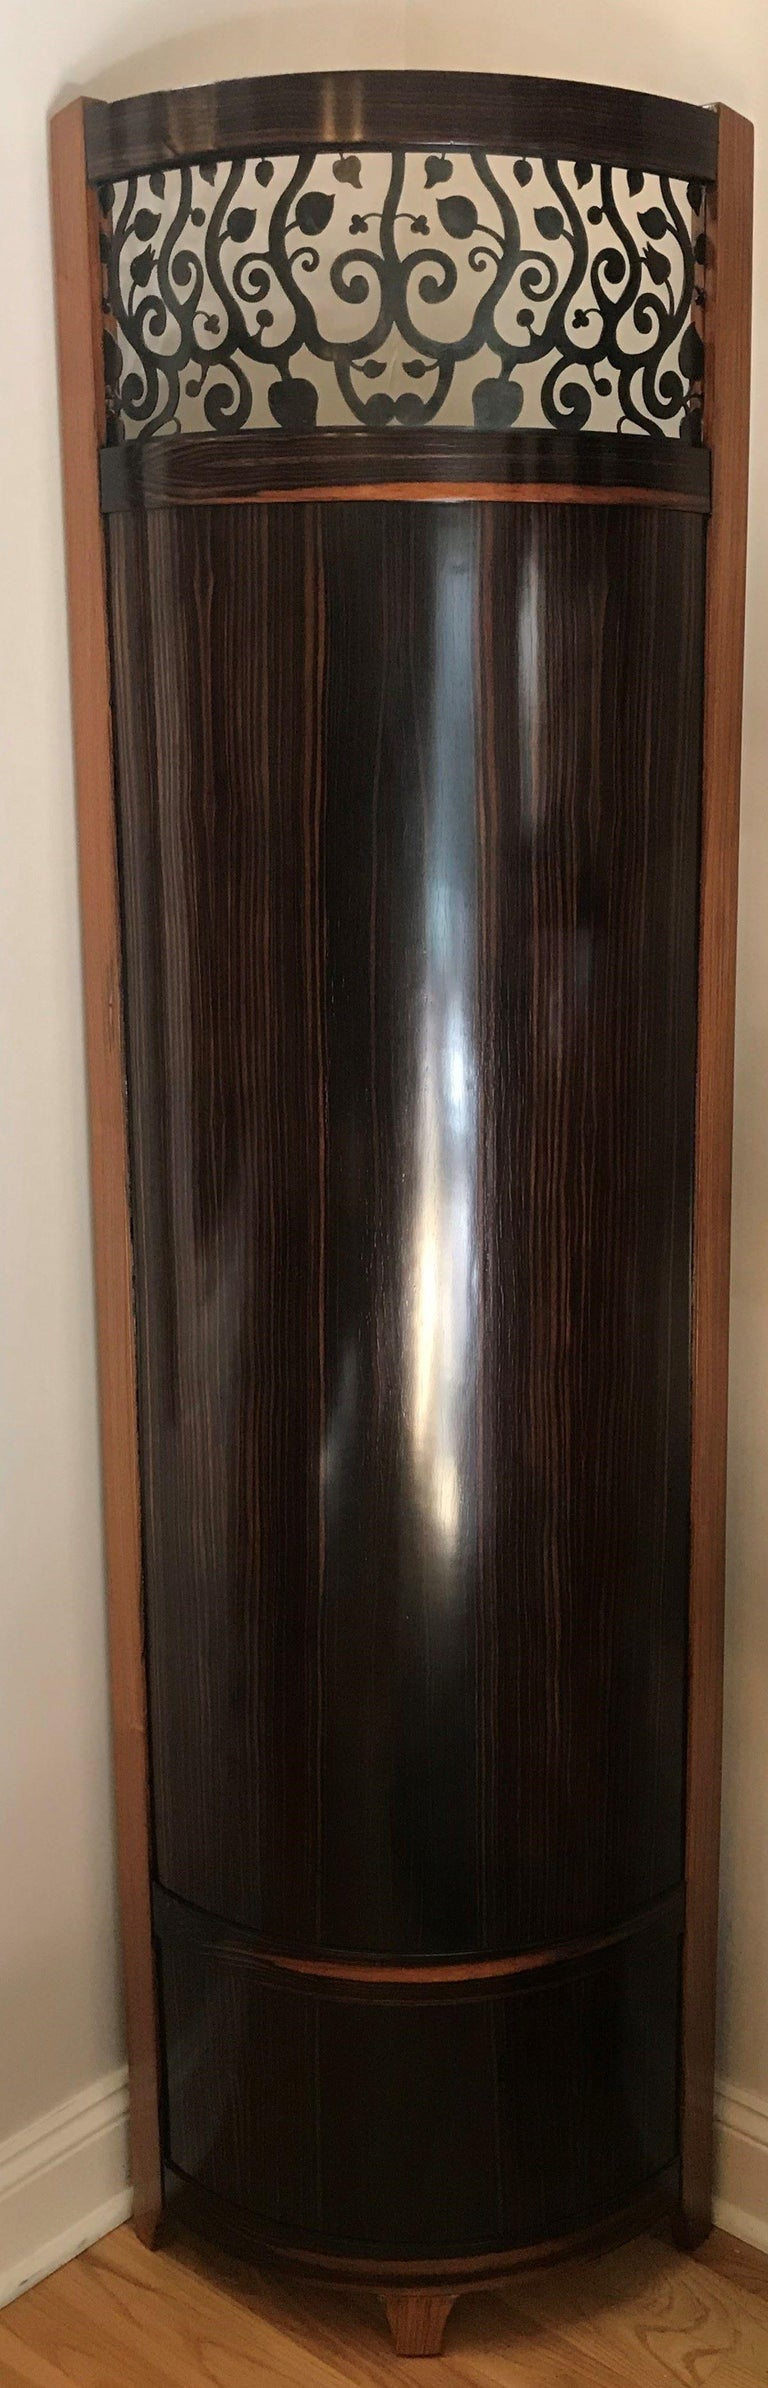 Contemporary Screen / Room Divider Mixed Media with Exotic Wood, Steel and Tapestry For Sale